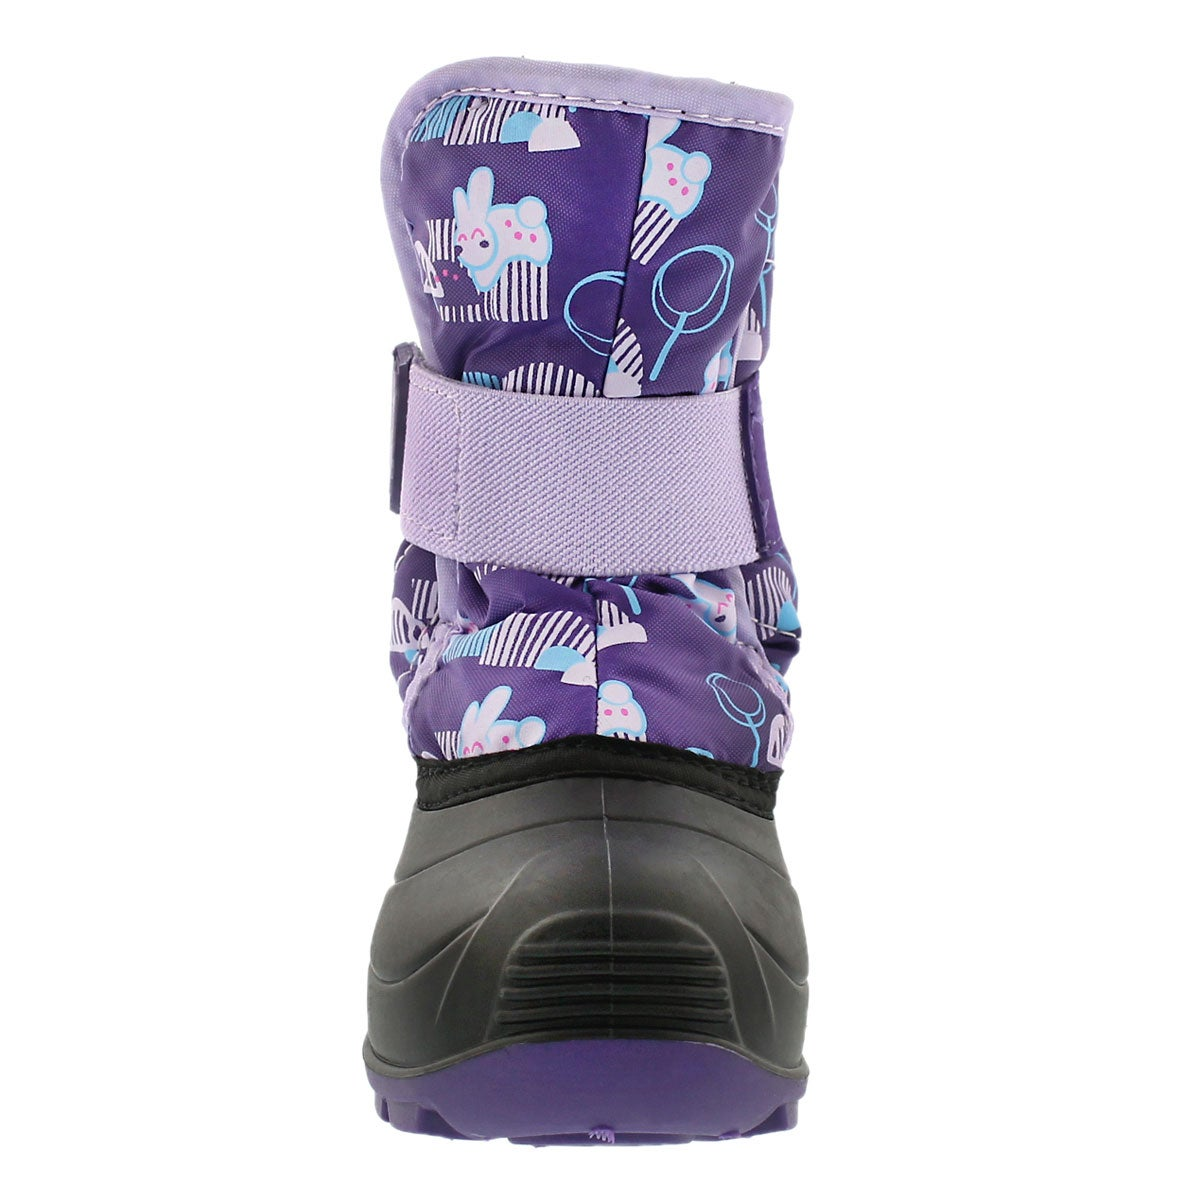 Infs Snowbug4 purple printed winter boot